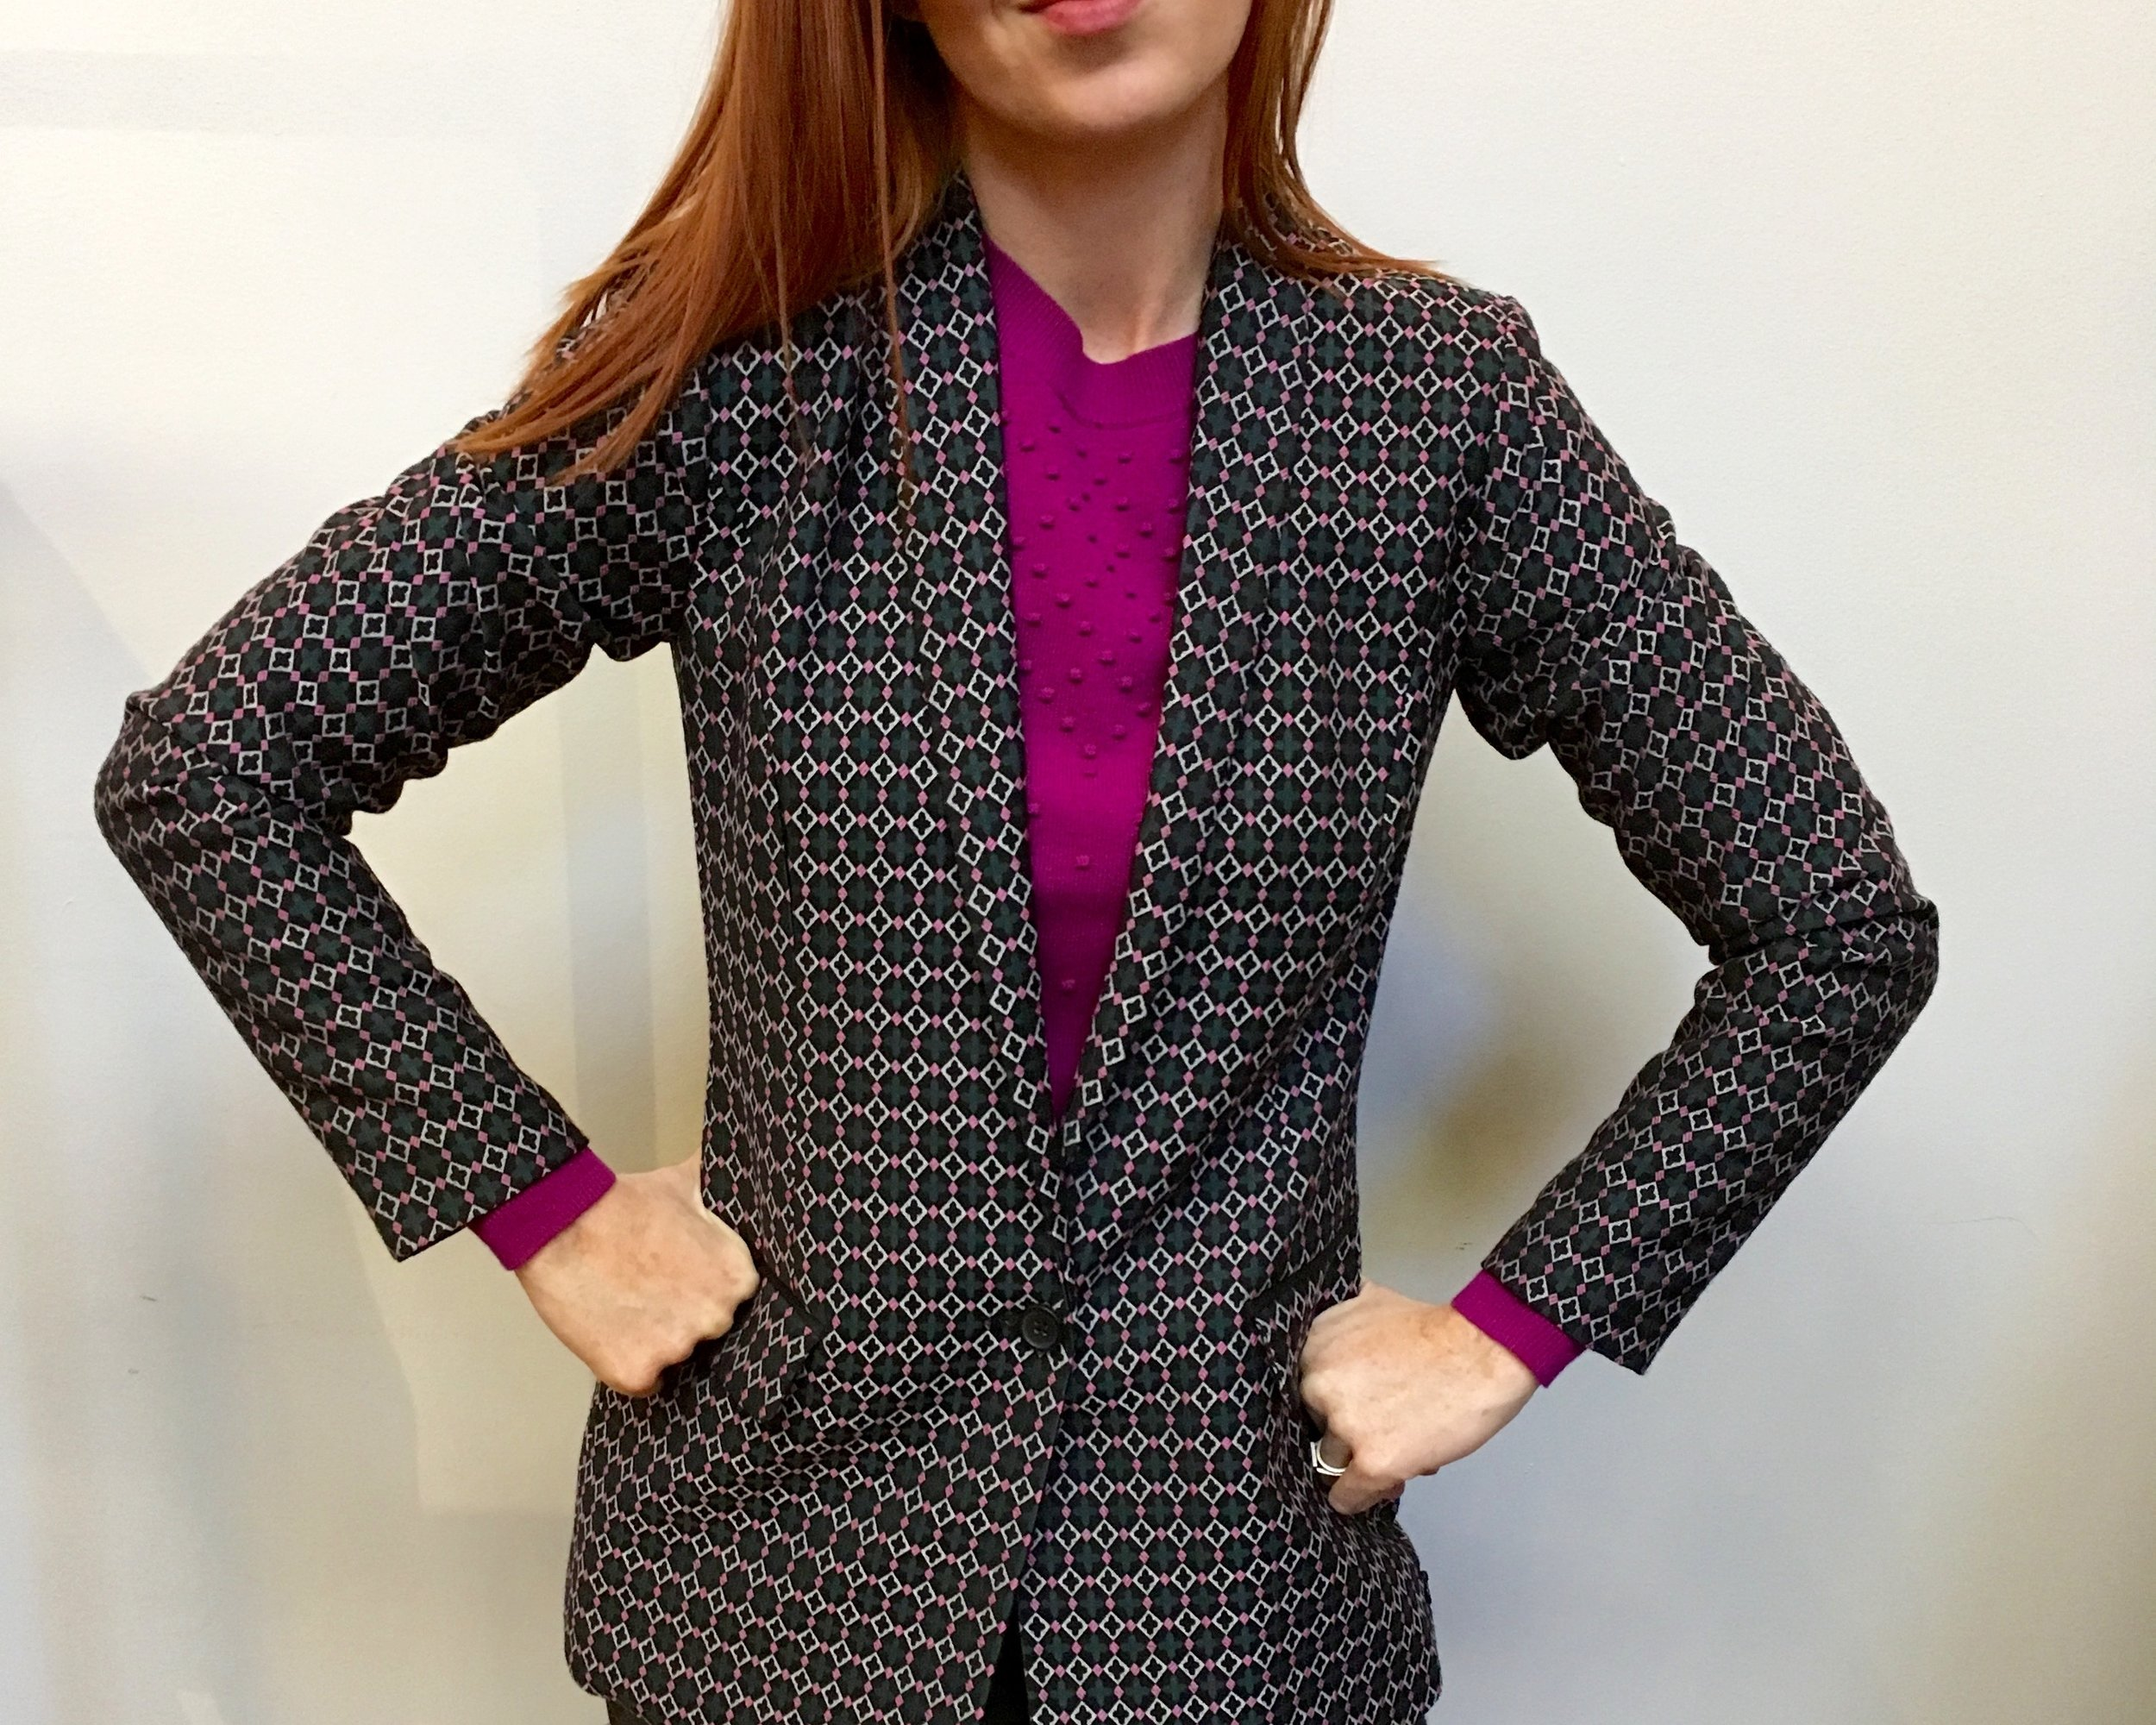 Ted Baker Sweater  WAS $229  NOW  $114 Maison Scotch Printed Blazer  WAS $289  NOW  $202